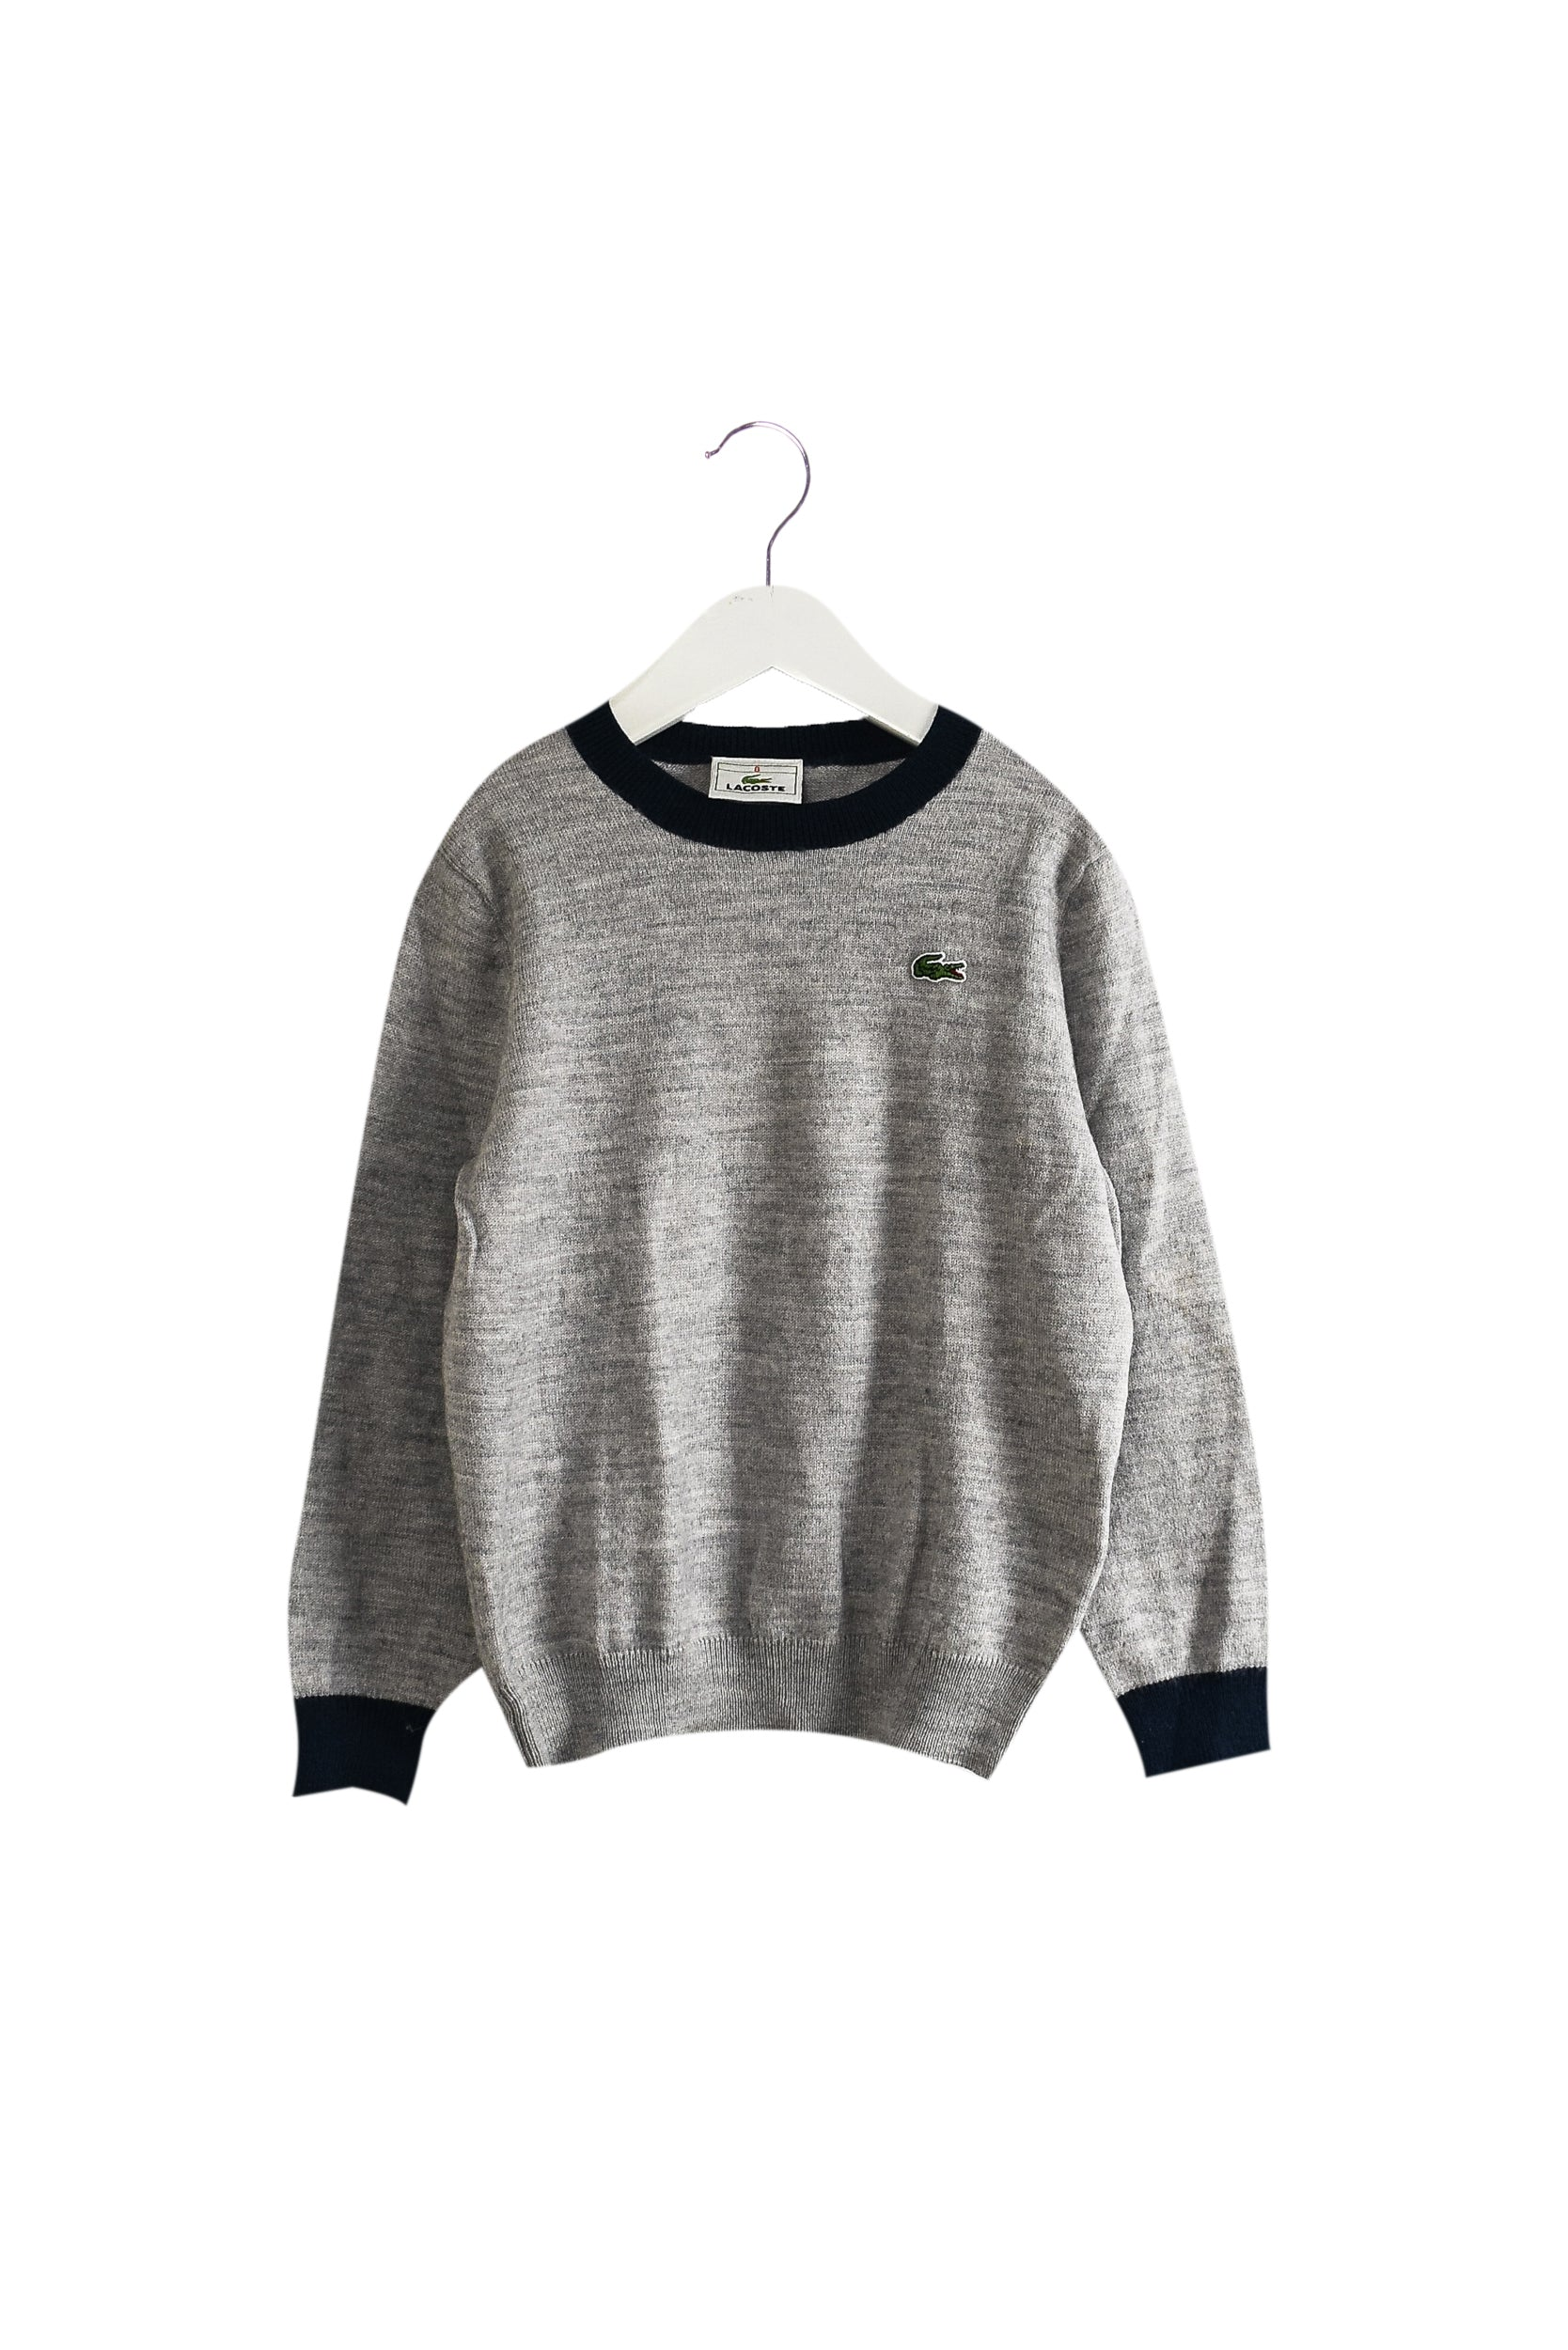 Knit Sweater 6T at Retykle